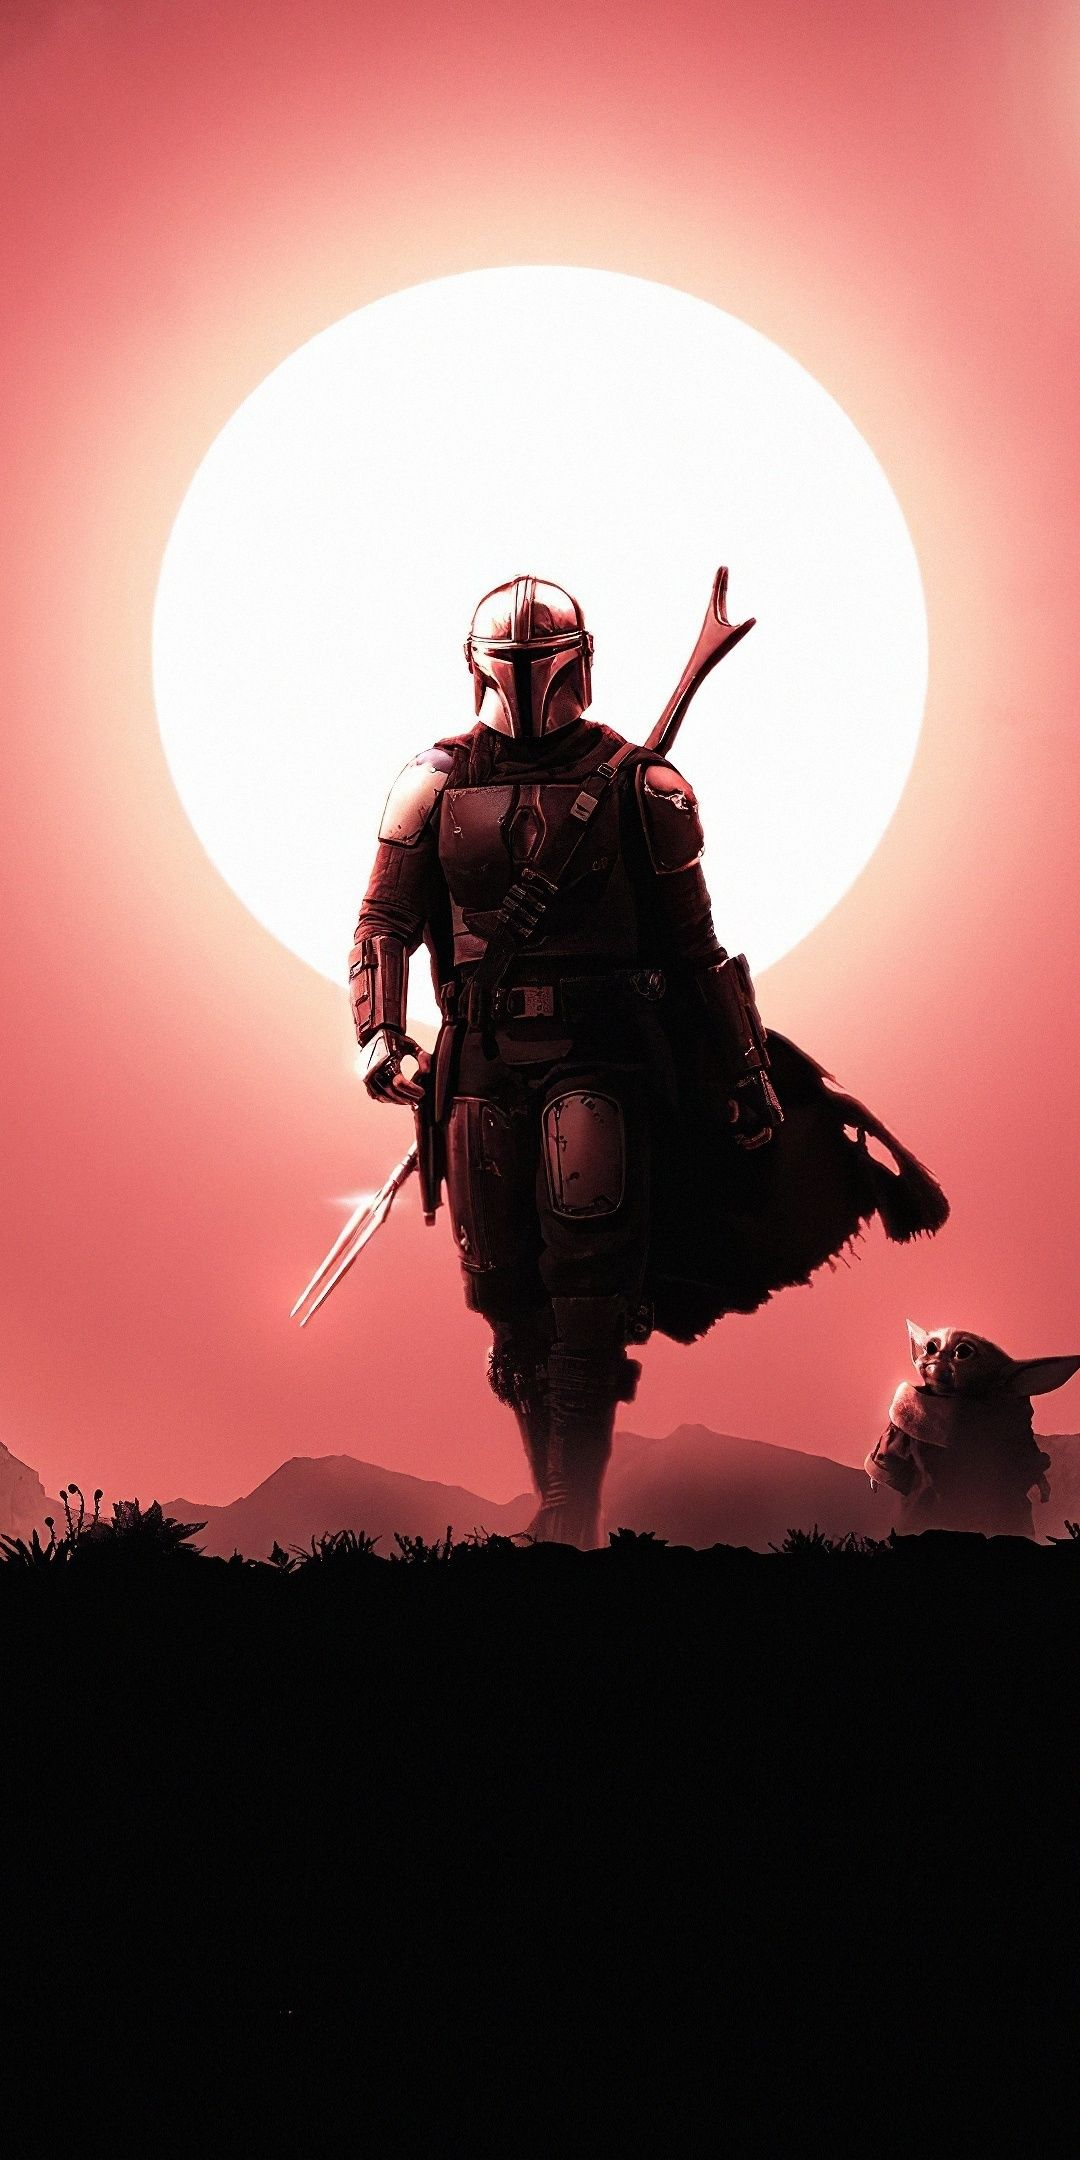 1080x2160 Soldier, The Mandalorian, silhouette, art, 2020